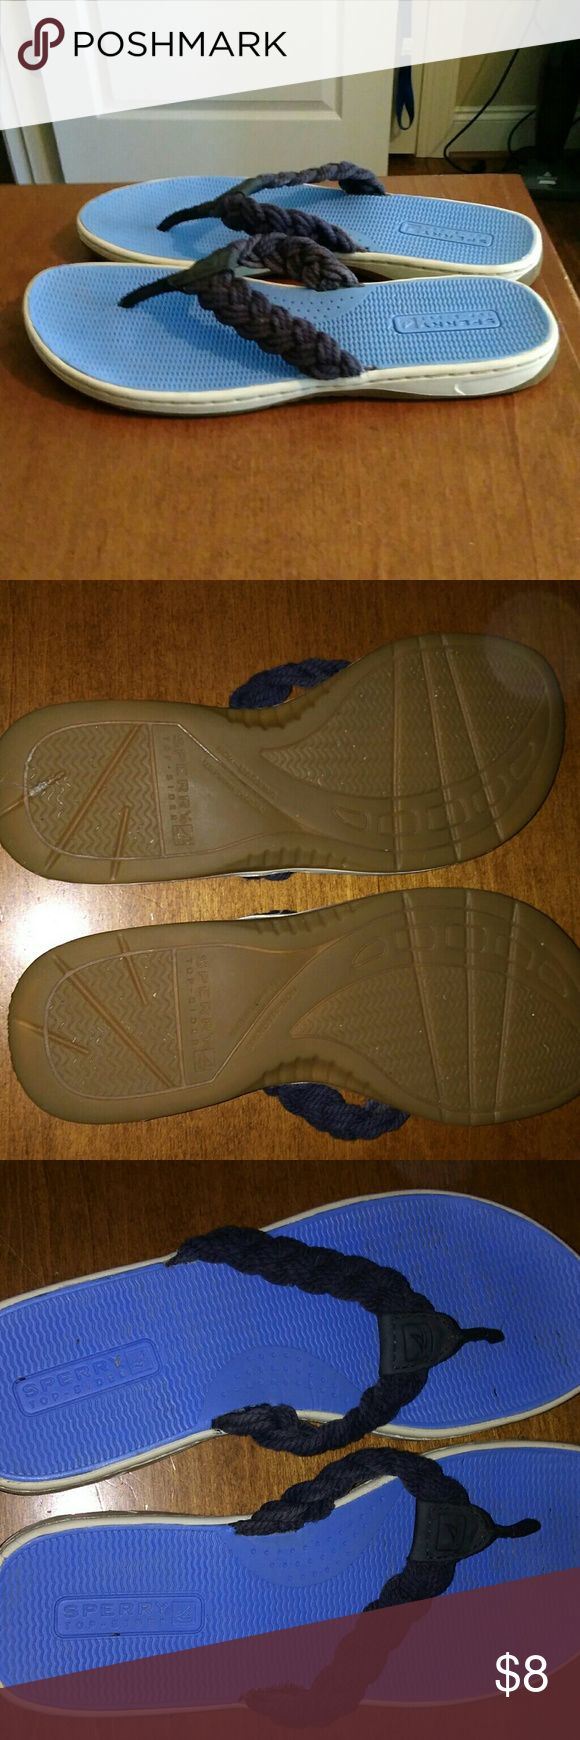 Sperry Sandals great for beach or pool.  braided navy thongs on top and hard rubber uppers and soles. Sperry Top Siders Shoes Sandals